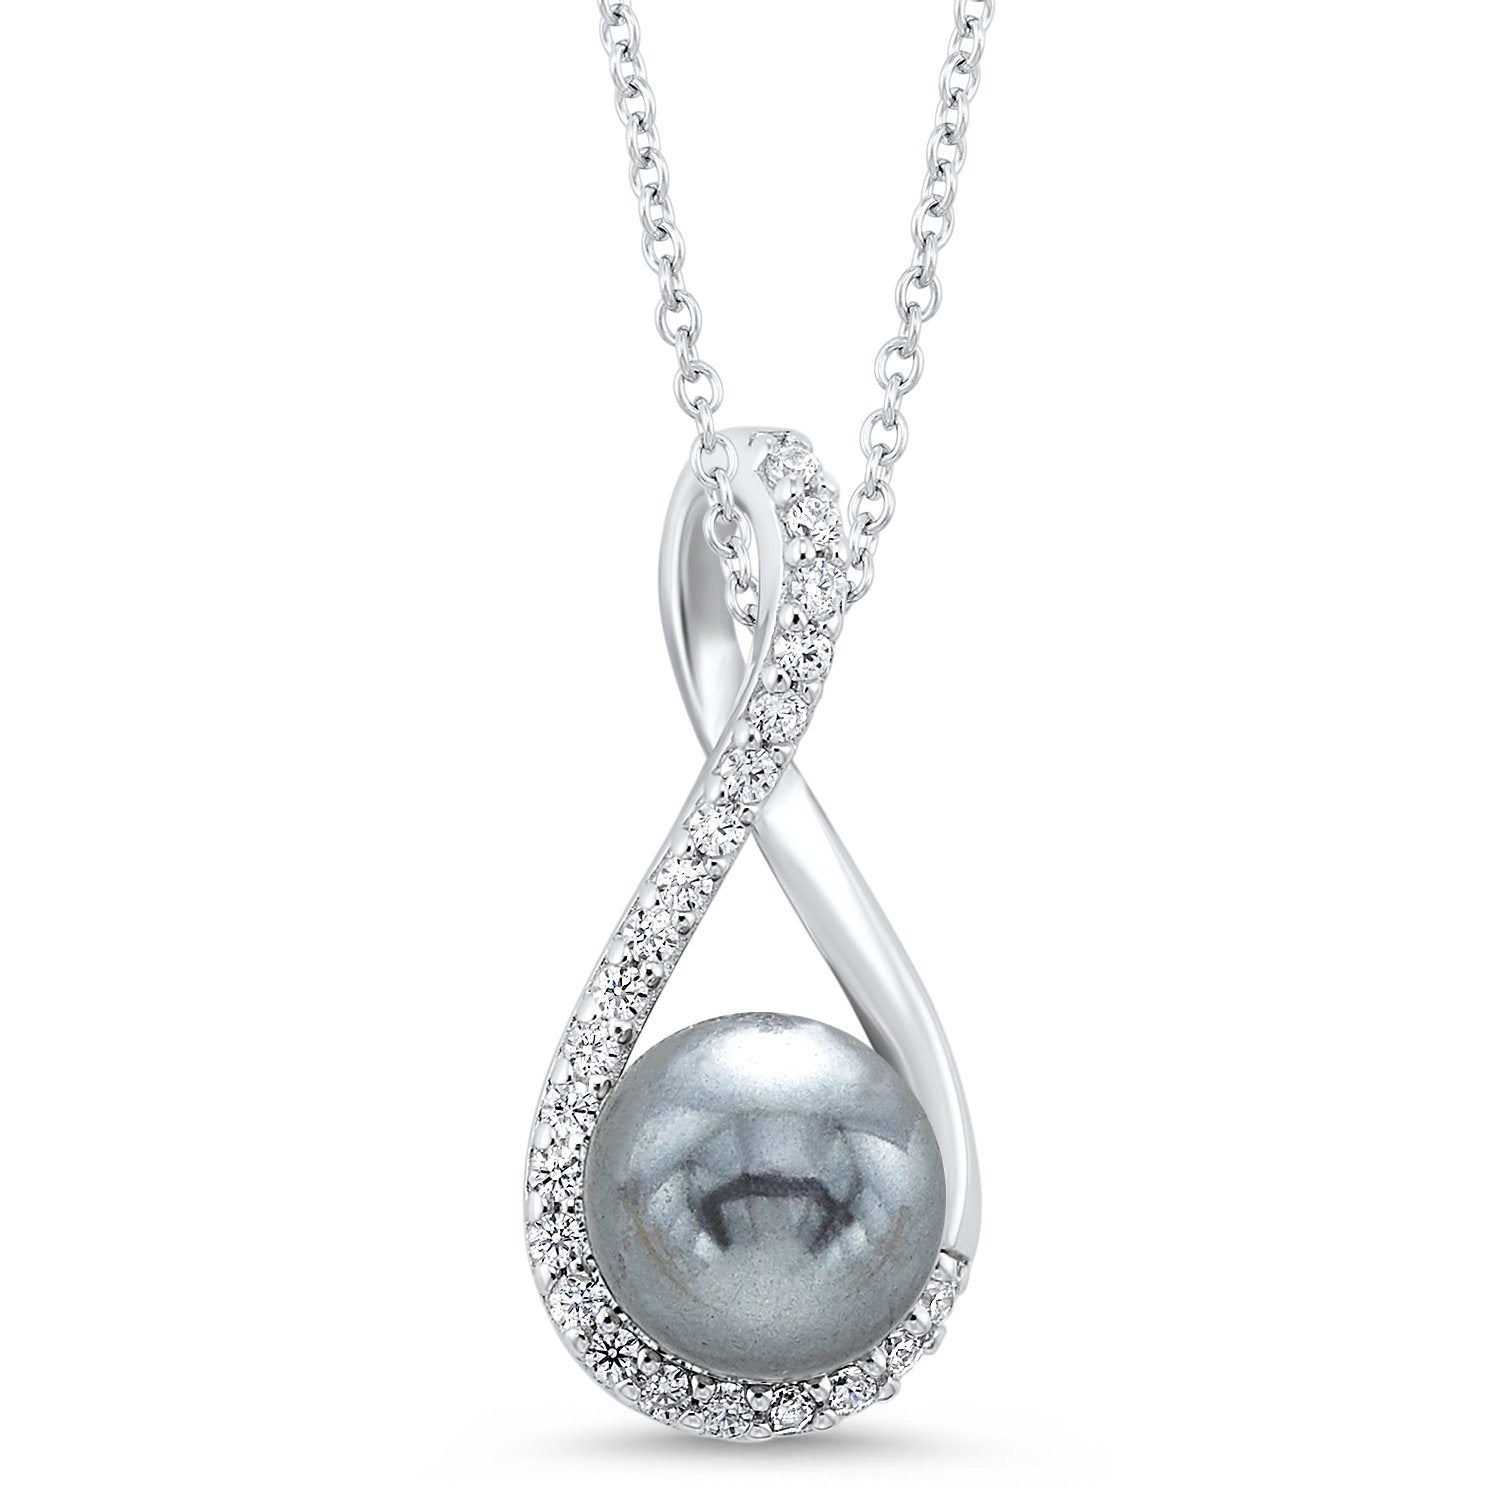 e7f3474297 NECKLACES - Sterling Silver And Gray Freshwater Pearl Infinity Necklace  With CZ Accents